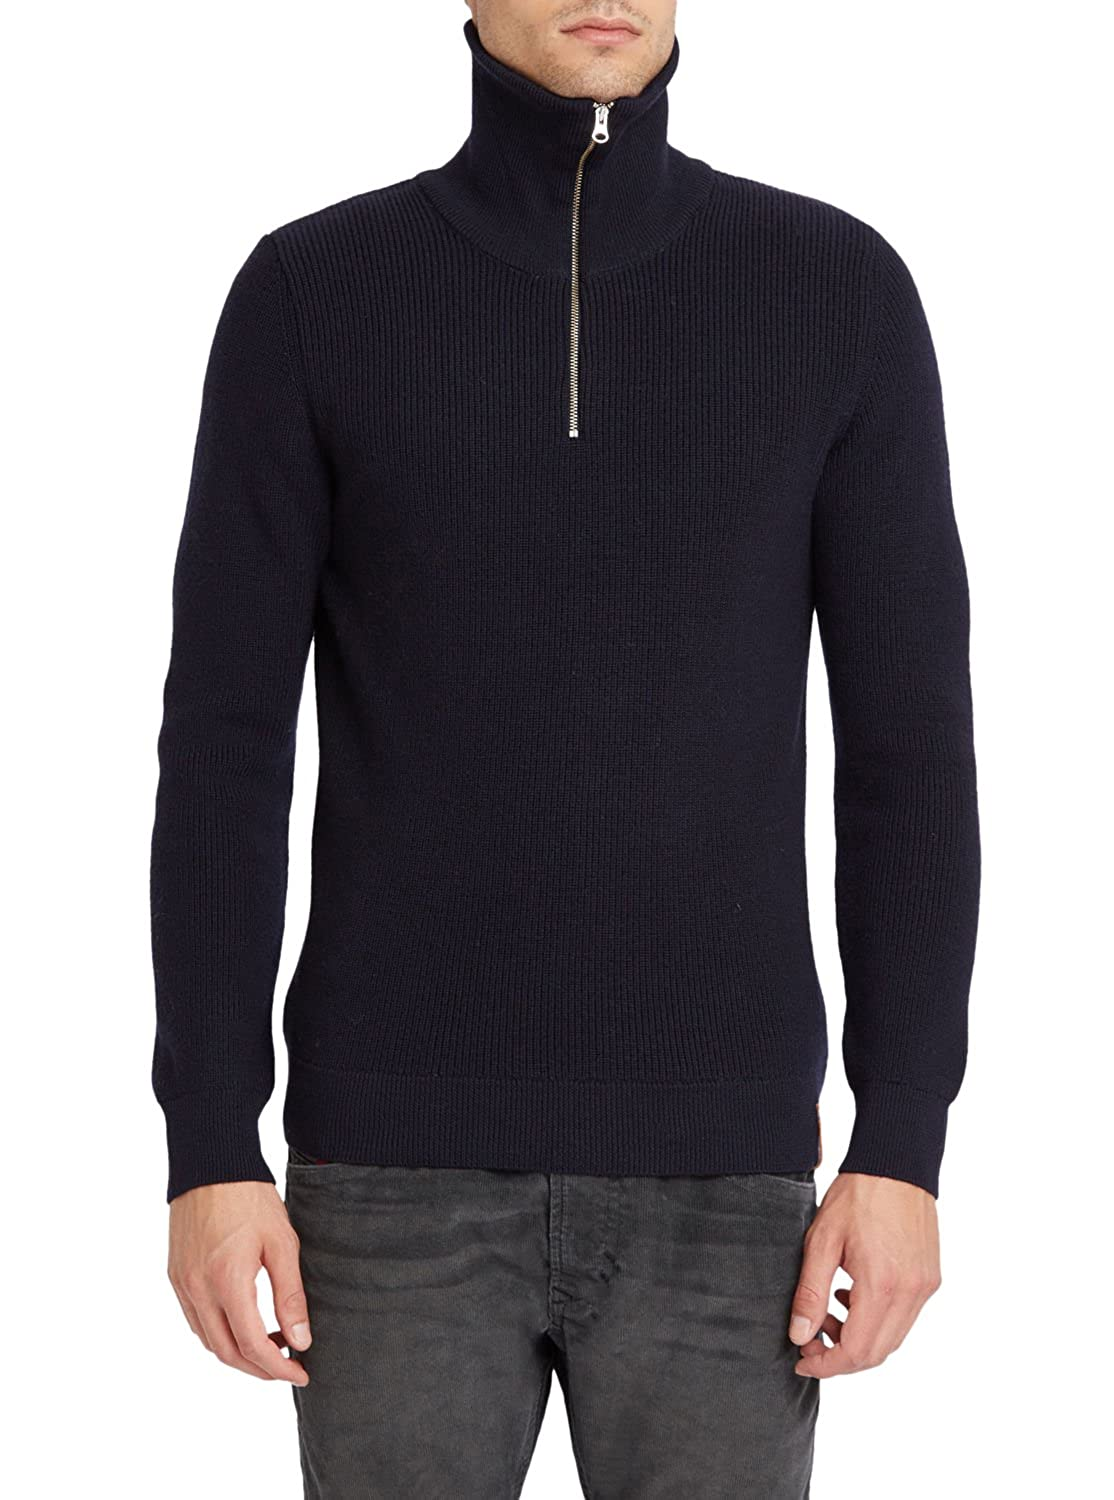 KNOWLEDGE COTTON APPAREL - Zip-neck Sweaters - Men - Navy Rib Stitch Zip Neck Sweater for men